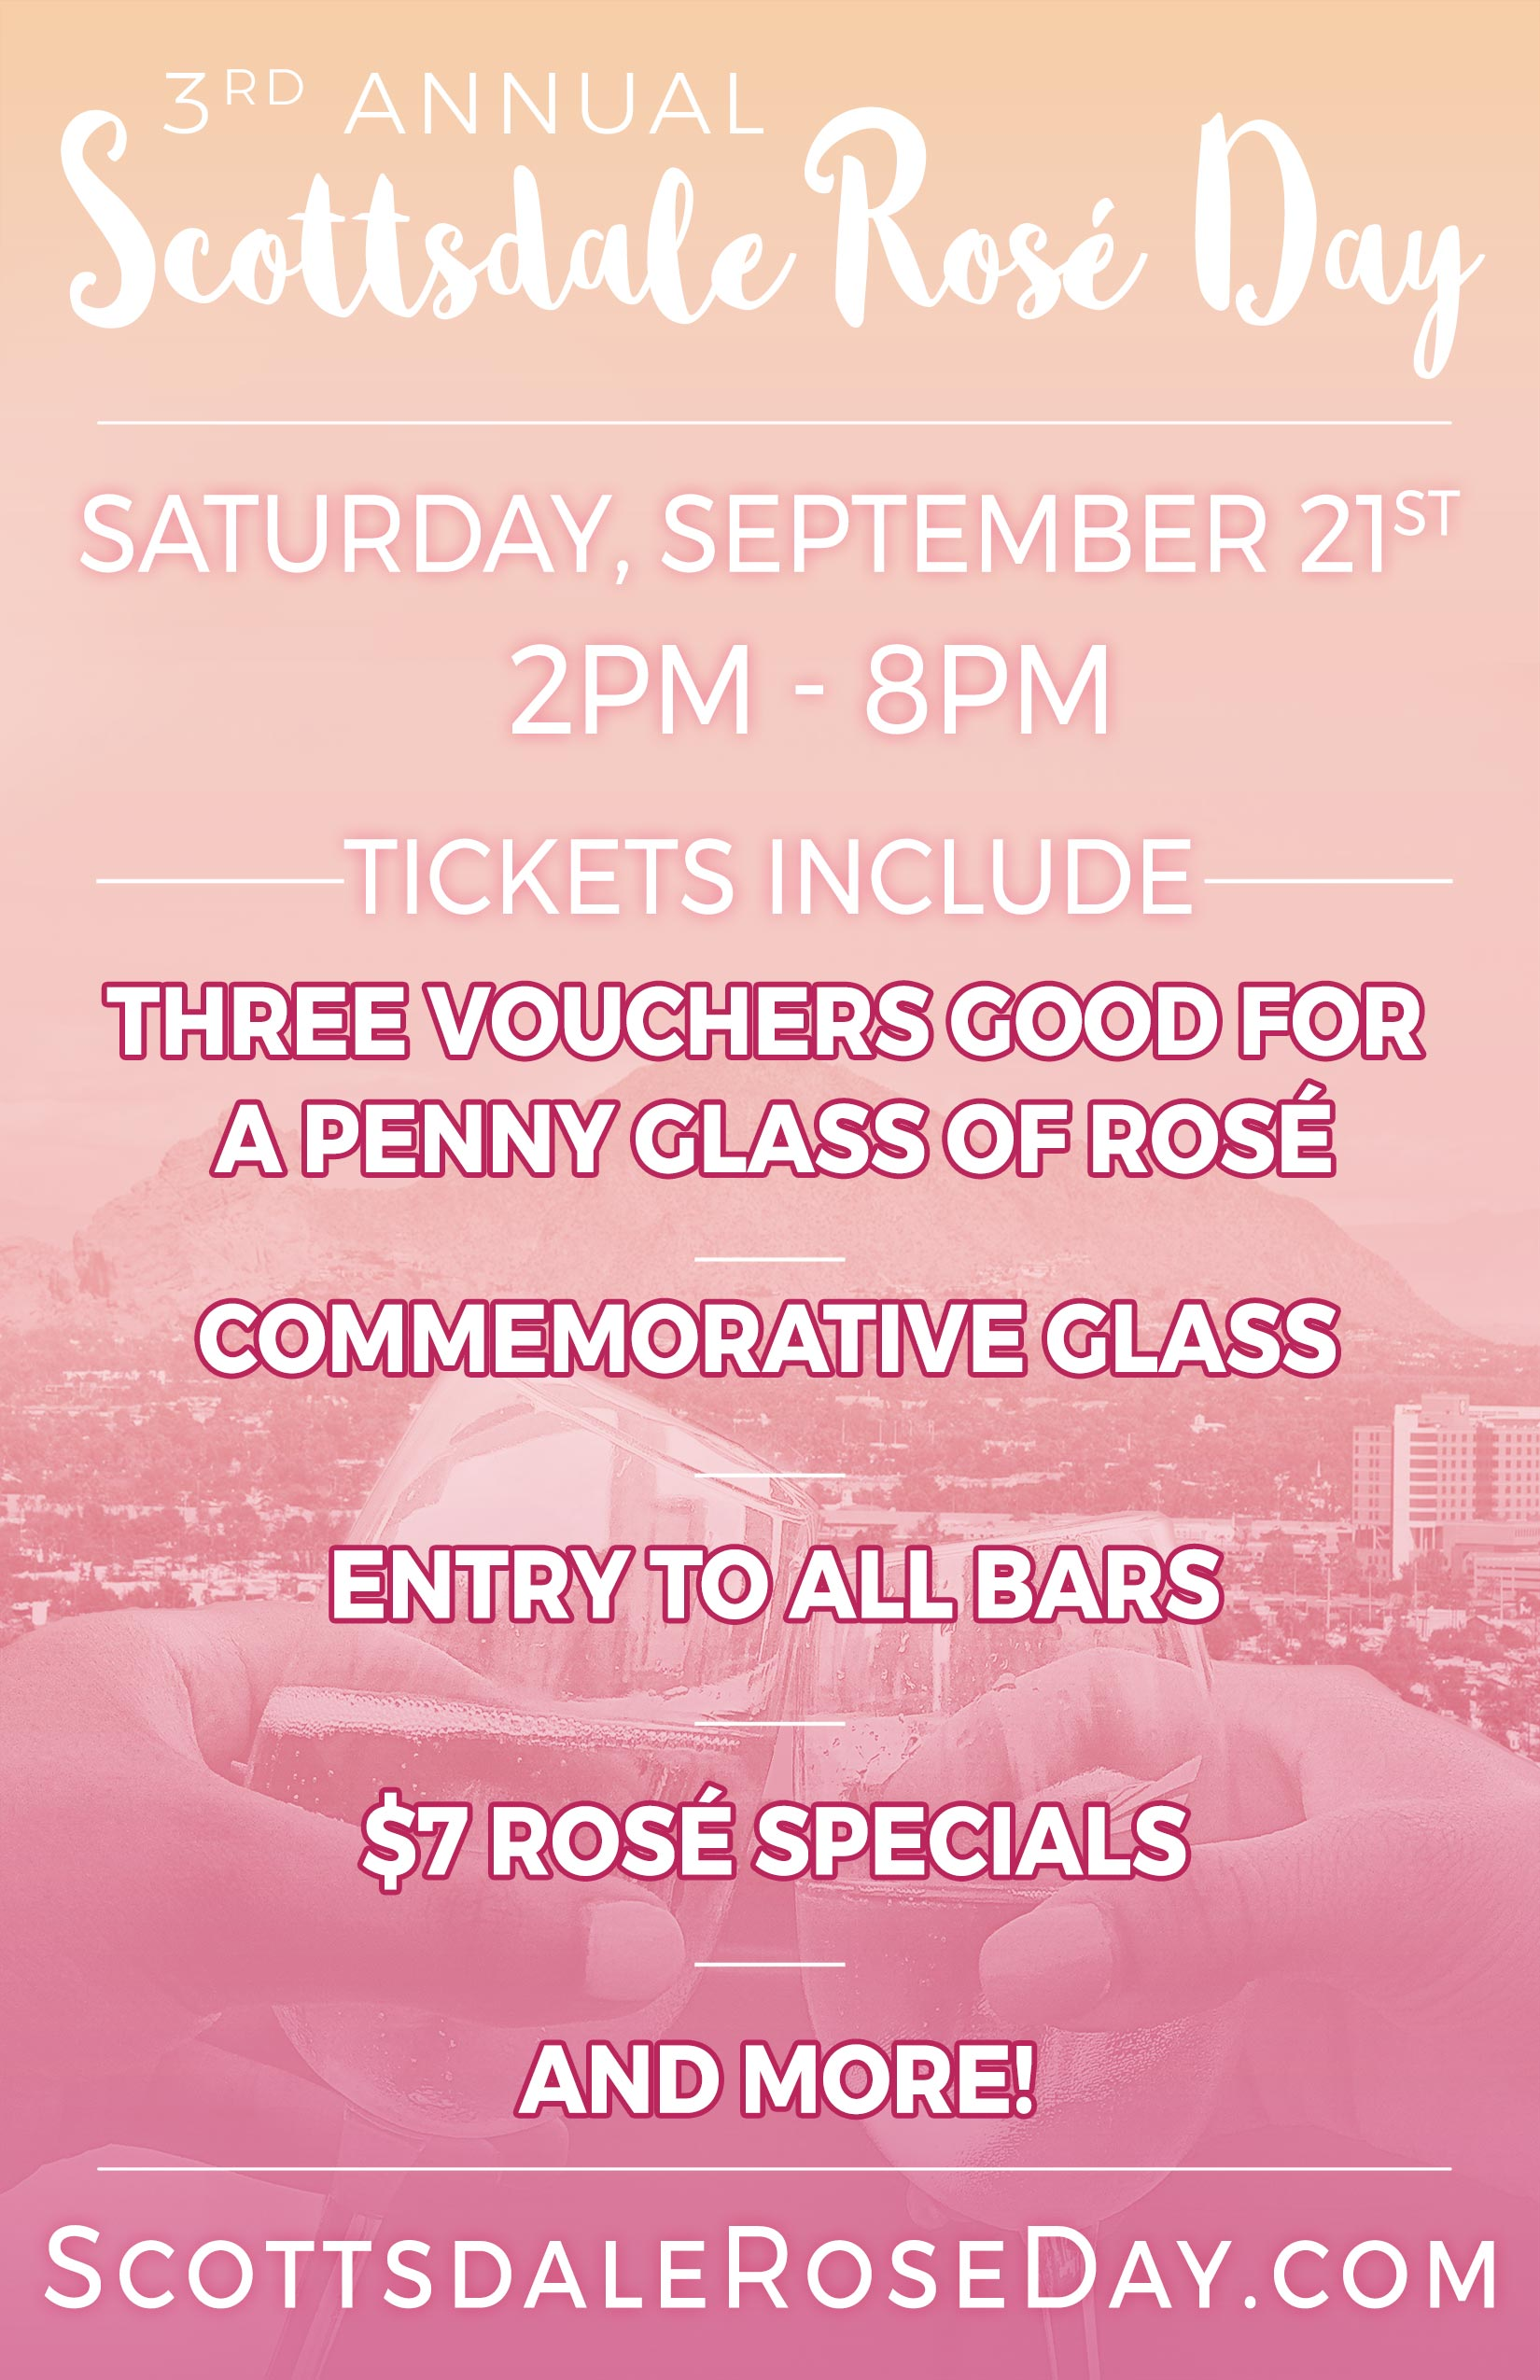 Scottsdale Rosé Day Party in Old Town - An Official Scottsdale Rosé Day Commemorative glass, Three 1-penny ($.01) glasses of Rosé (each attendee will receive 3 vouchers, each good for a 1-penny glass of Rosé), Admission to all participating venues, $7 Rosé Specials while supplies last & More!